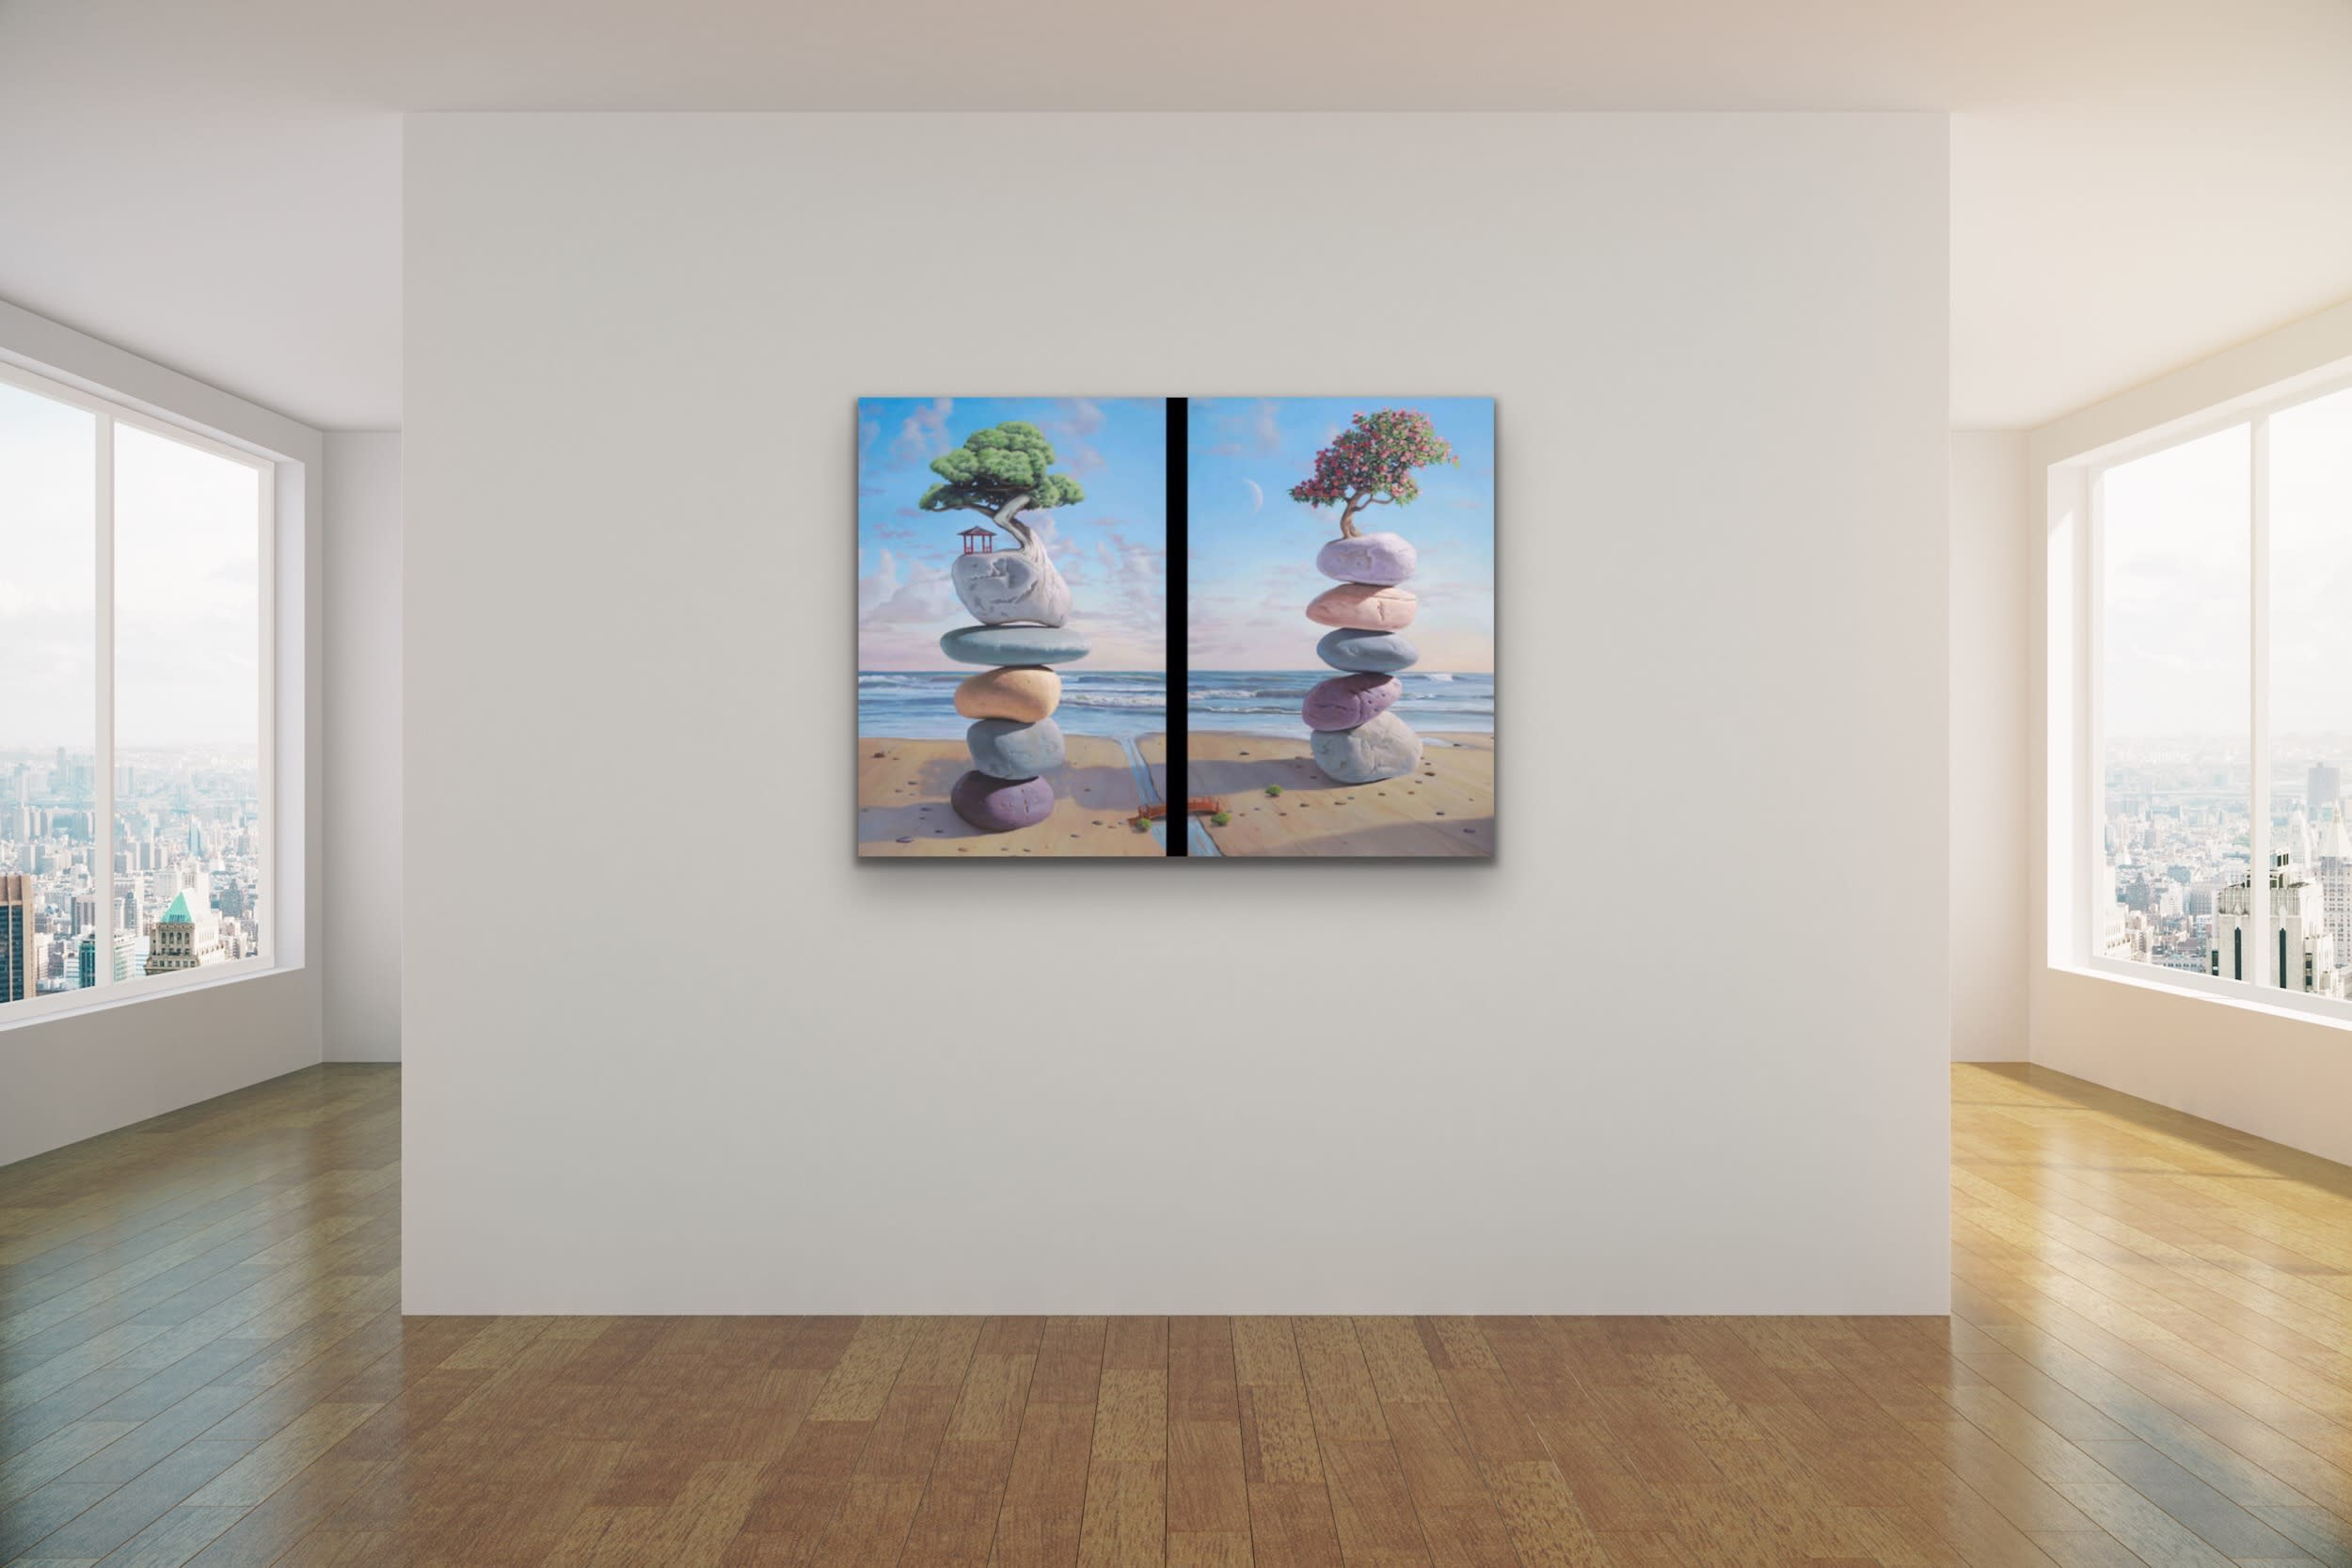 <div class='title'>           Paul Bond Magical Realism Poetry Serene Landscape Animals Nature Surreal Metaphorical Whimsical Fantasy Evo Art Maui Lahaina Front Street Art Gallery 58         </div>